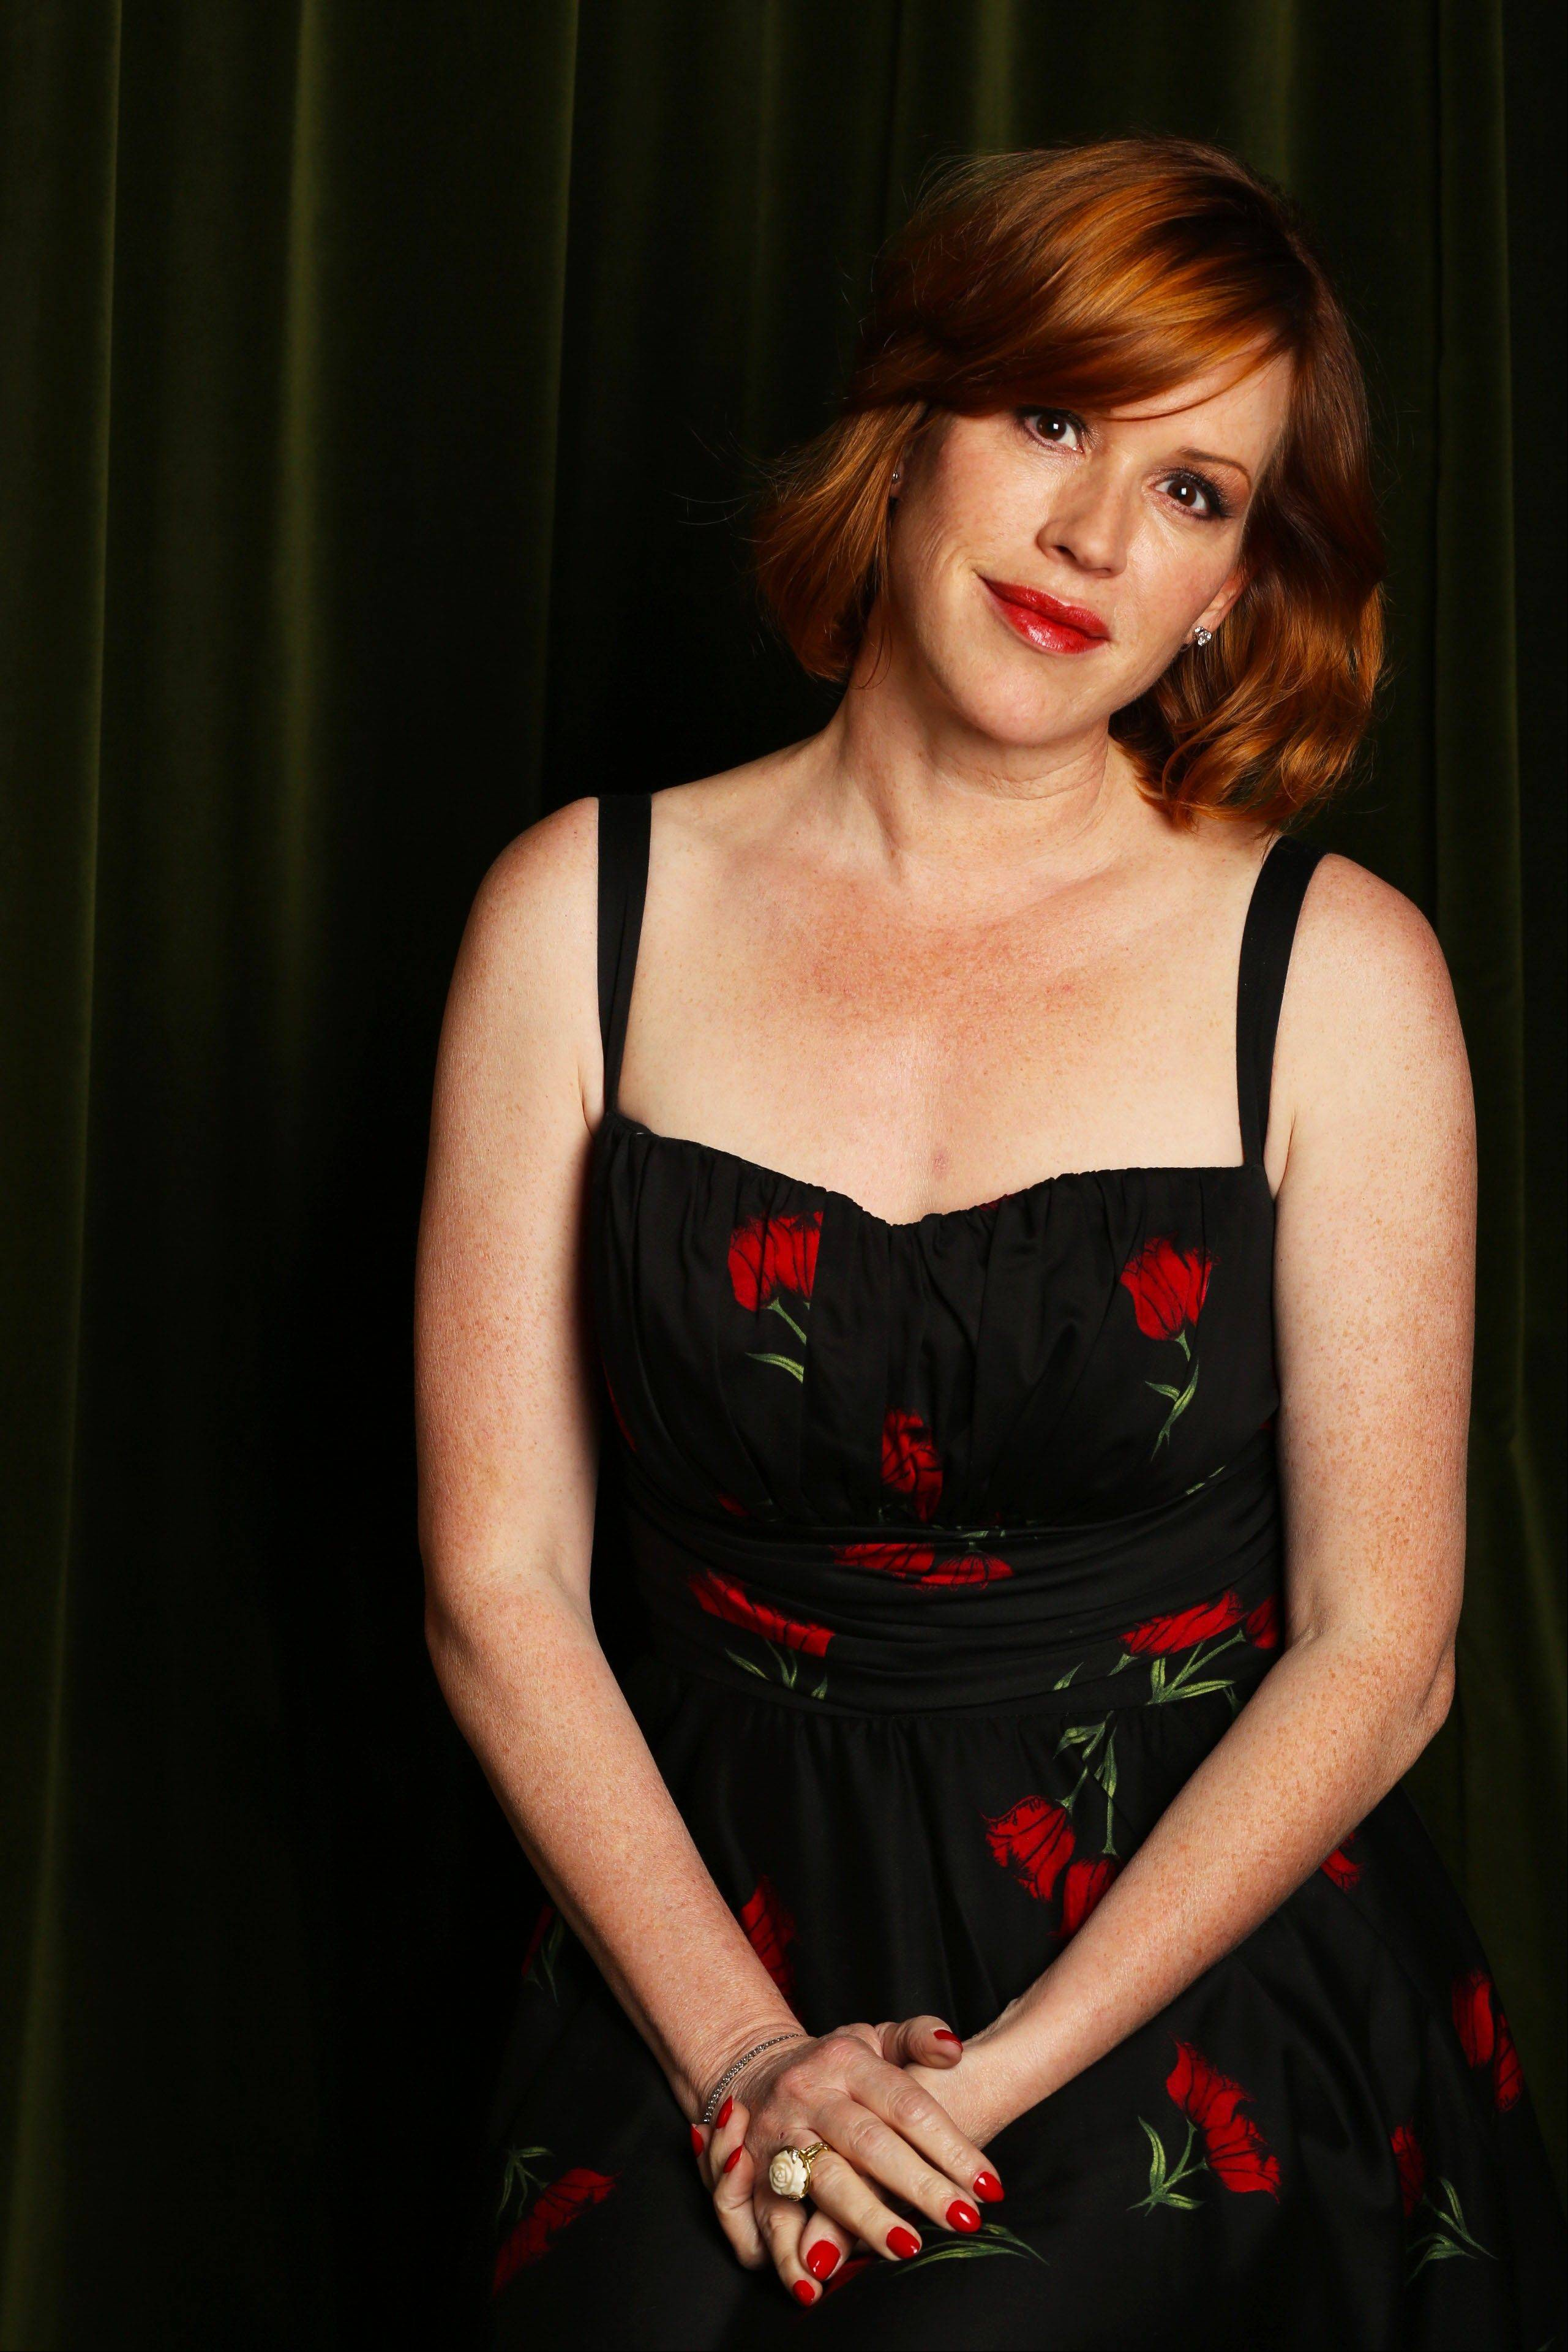 Actress-singer Molly Ringwald comes to the Arcada Theatre in St. Charles on Saturday, Oct. 5.